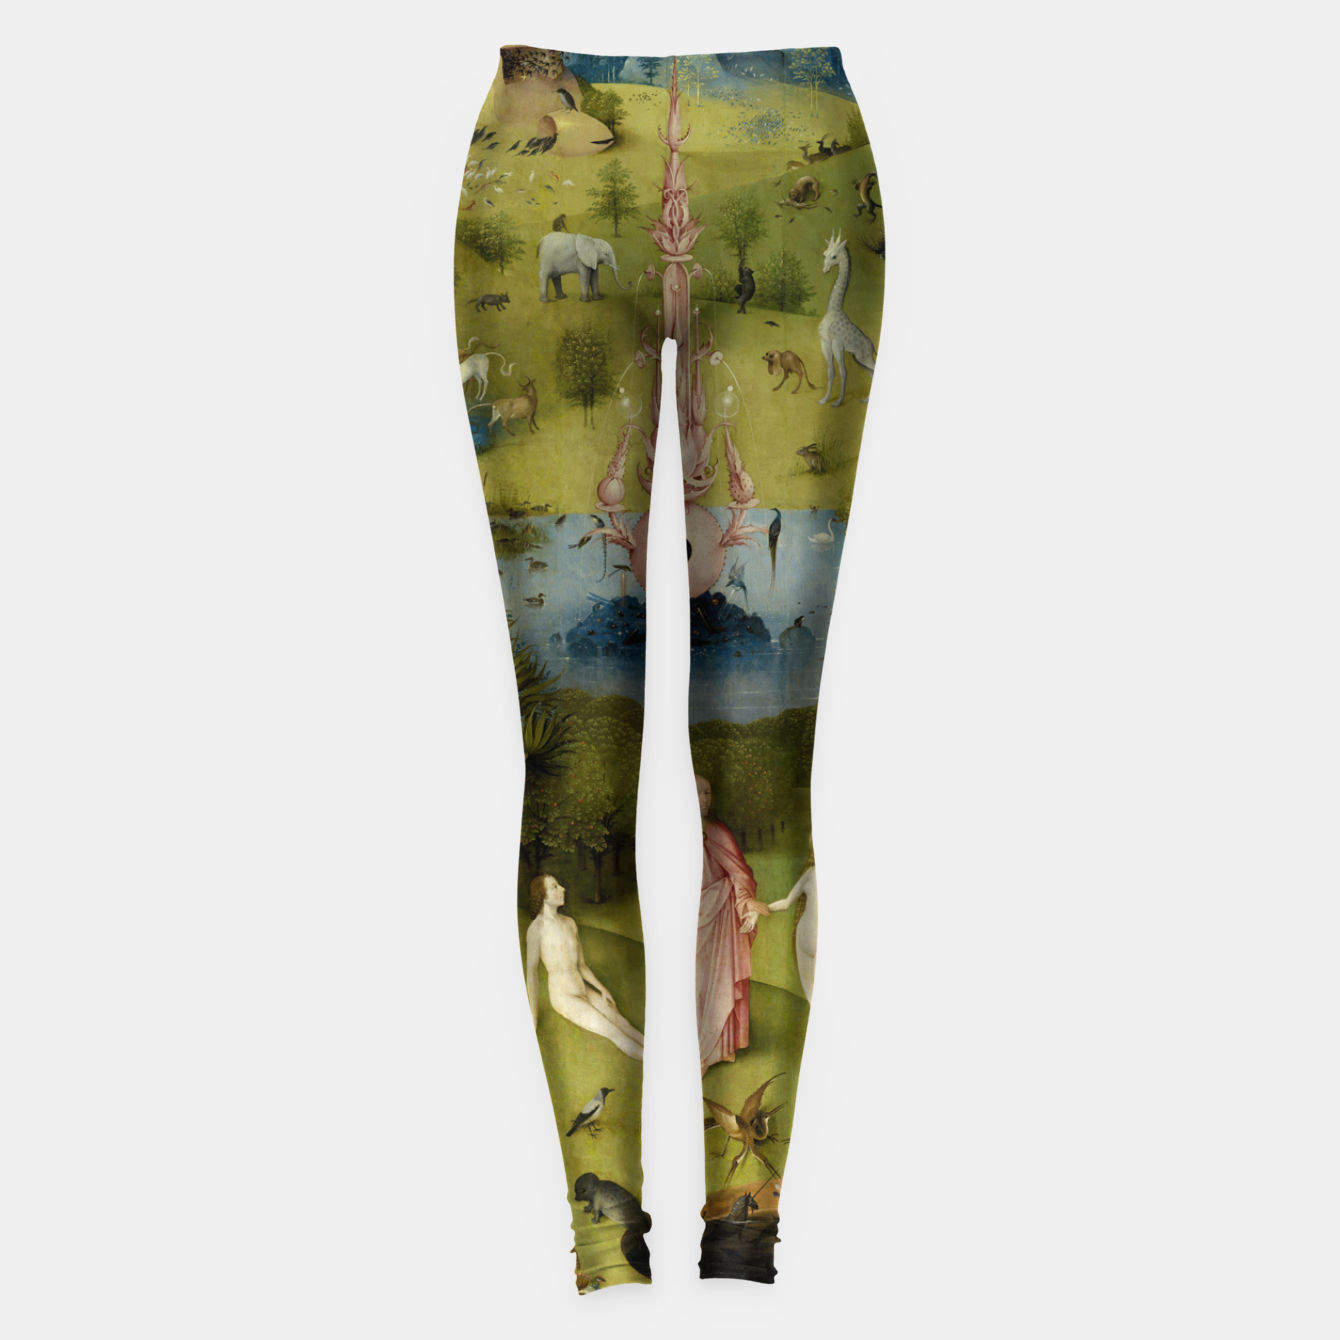 Zdjęcie Fashion and Decor items of Hieronymus Bosch painting, Eden from the triptych Garden of Earthly Delights Leggings - Live Heroes